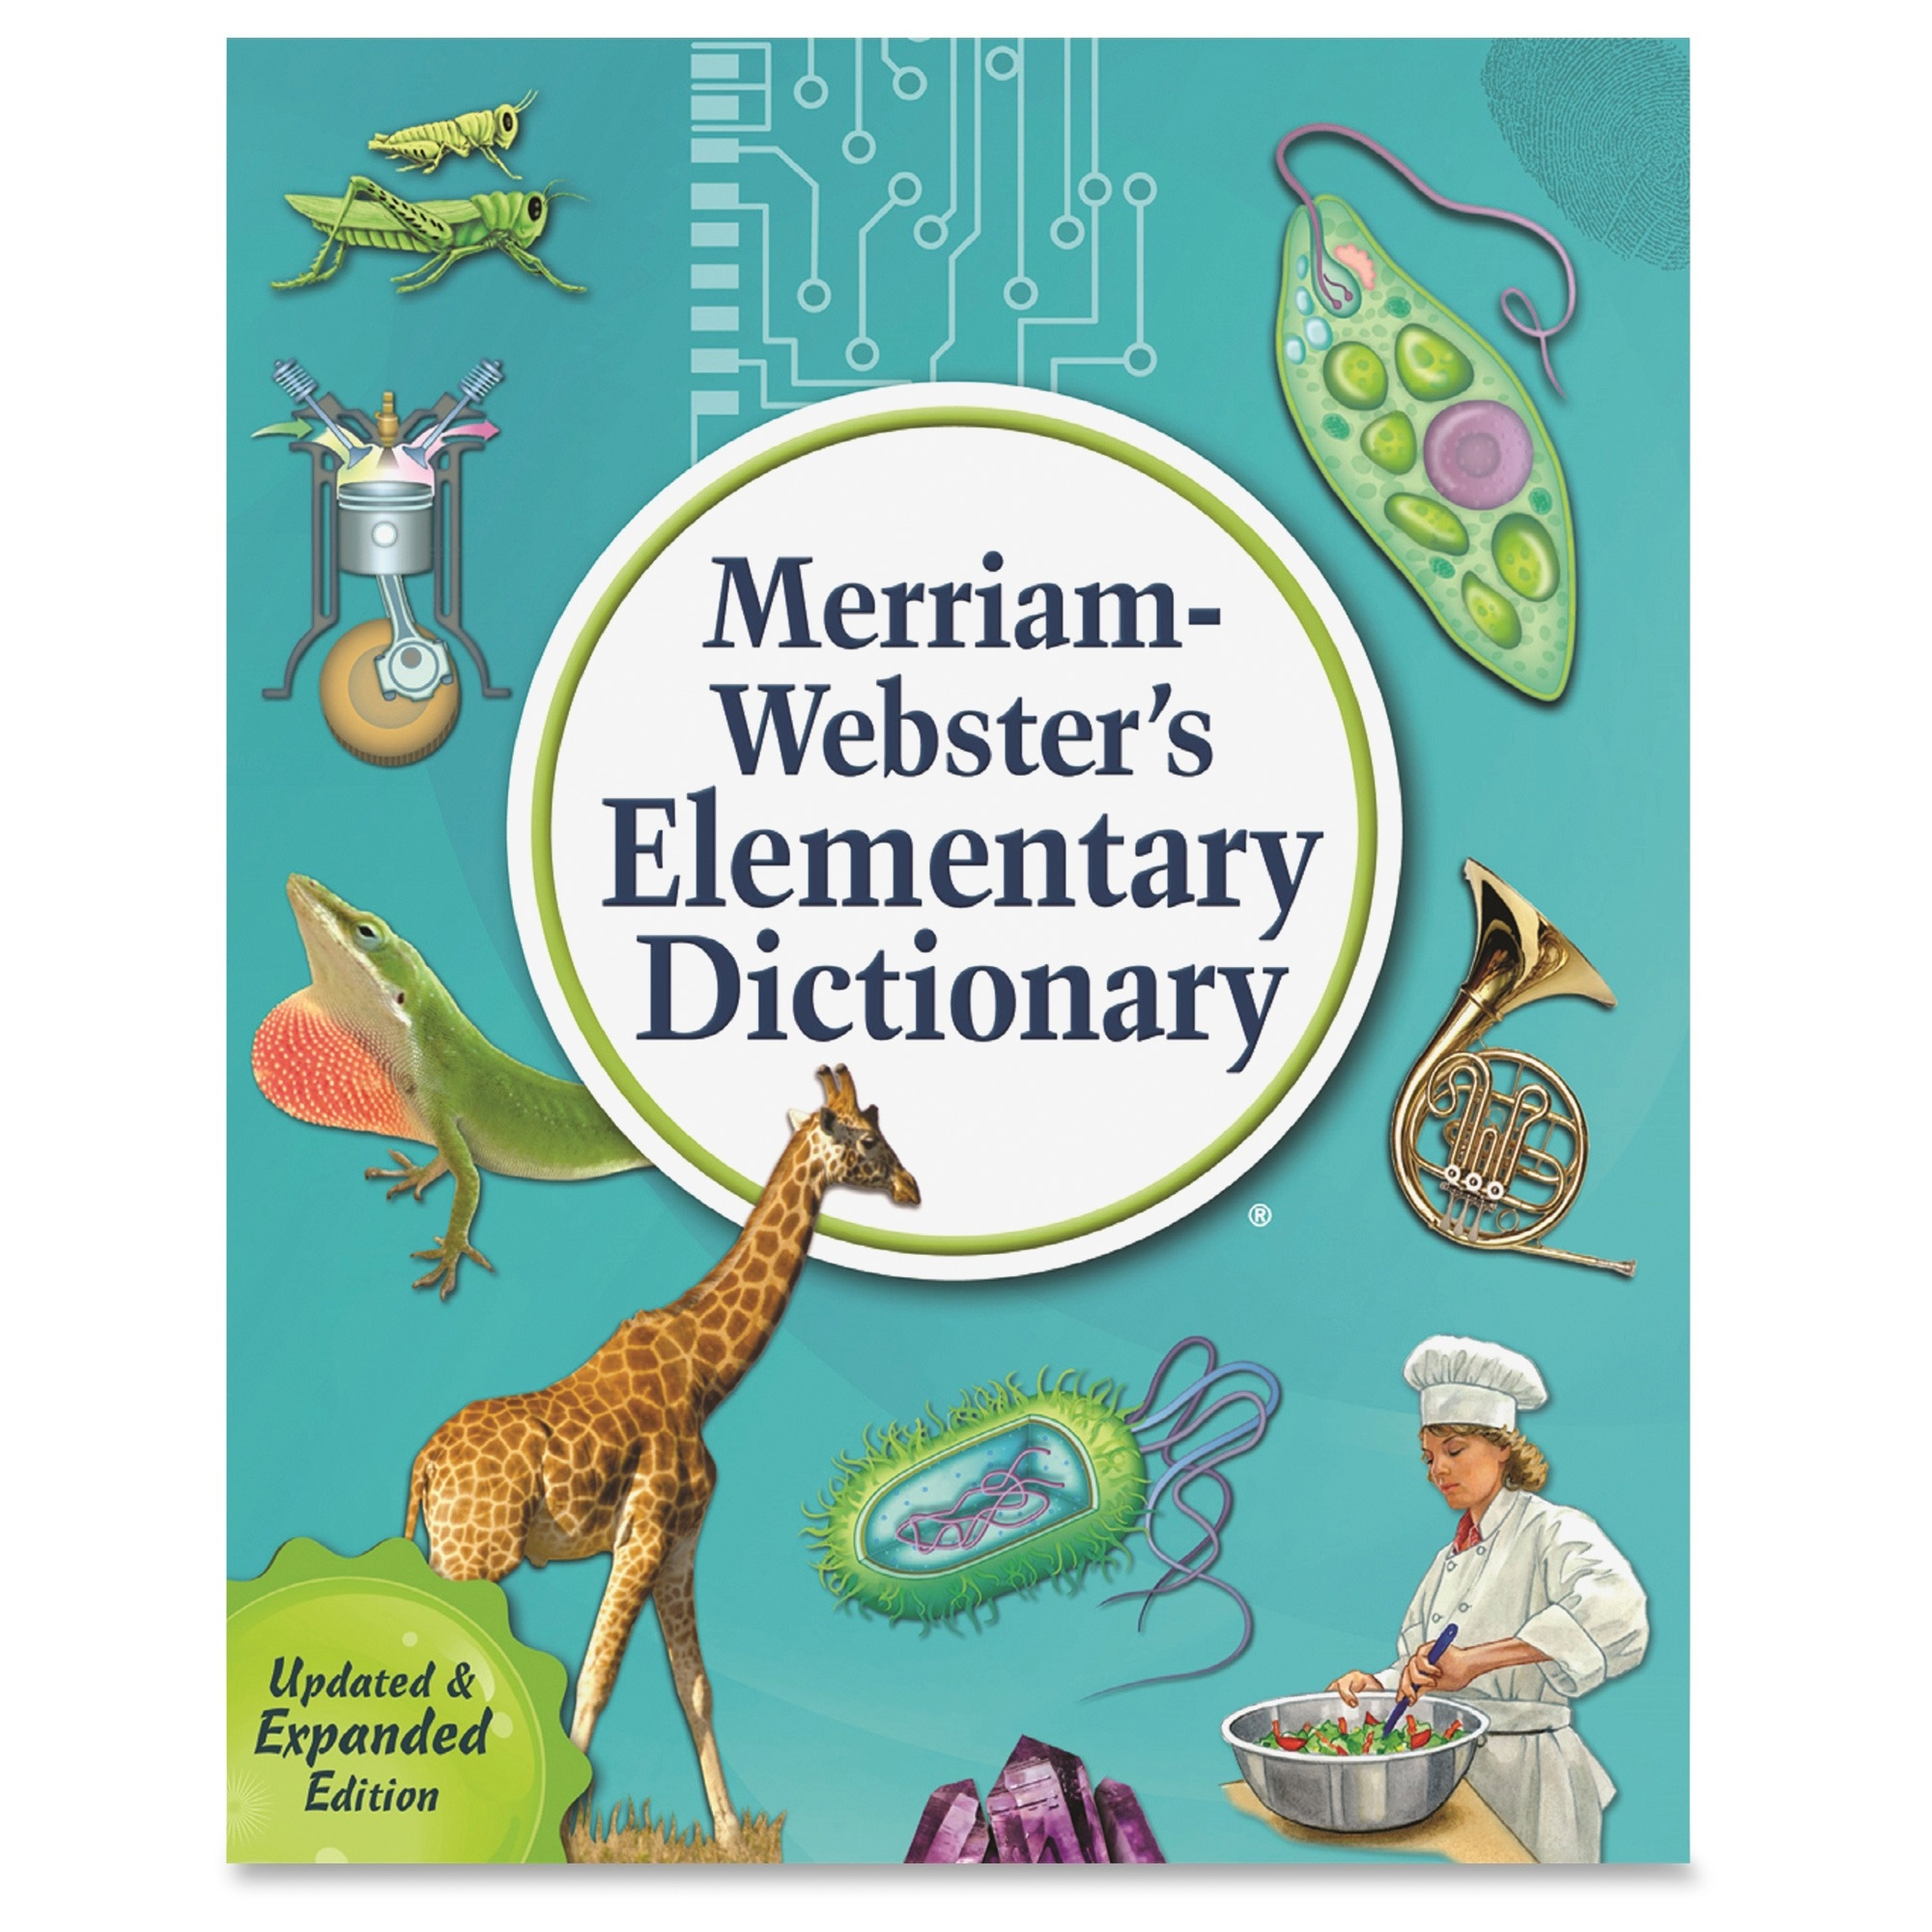 Merriam-webster Elementary Dictionary Dictionary Printed Book - English - Hardcover - 624 Pages (676-3)